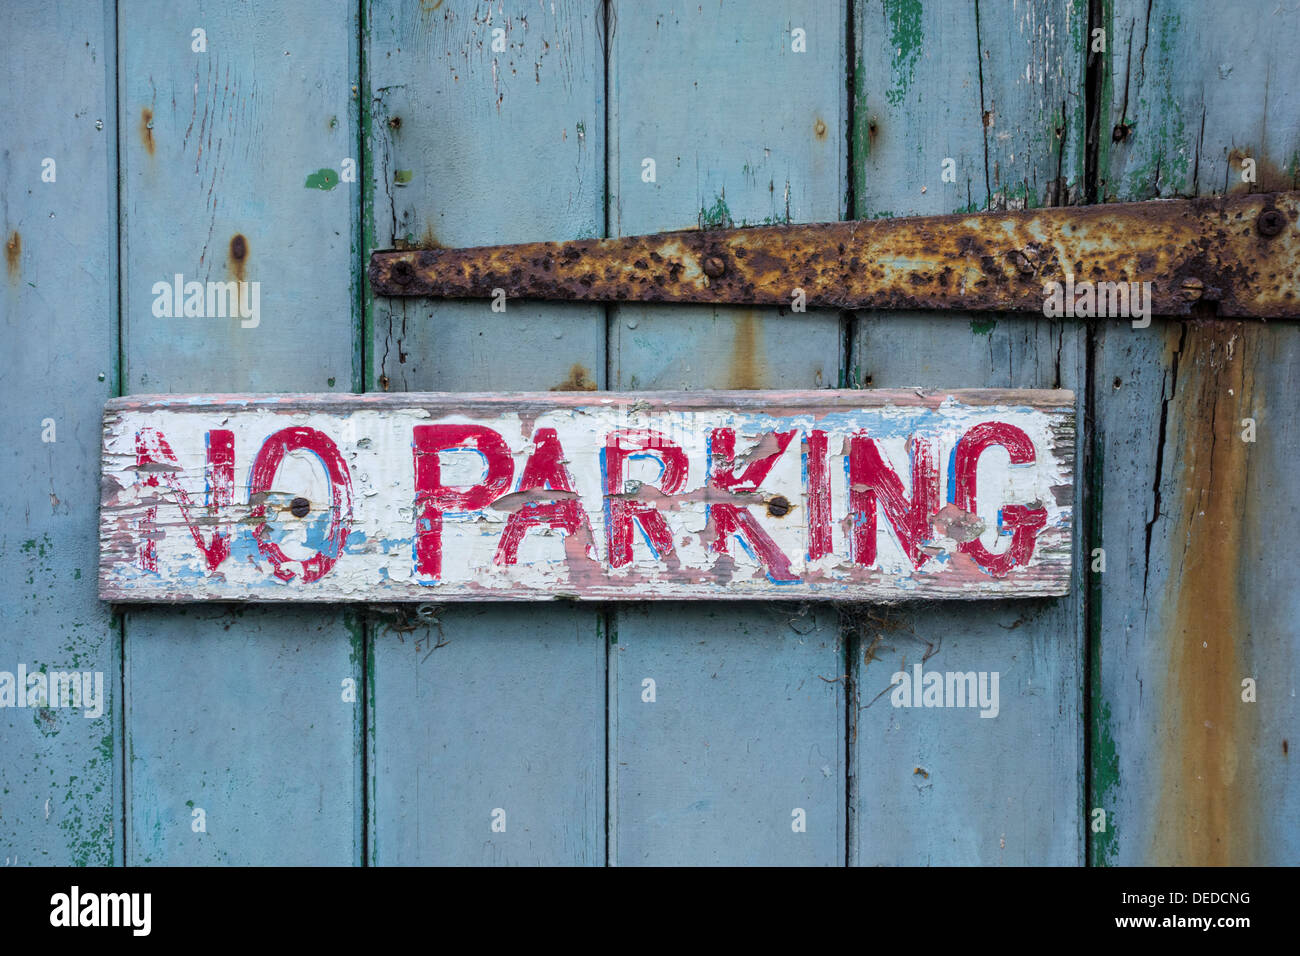 No Parking sign on weathered wooden door - Stock Image